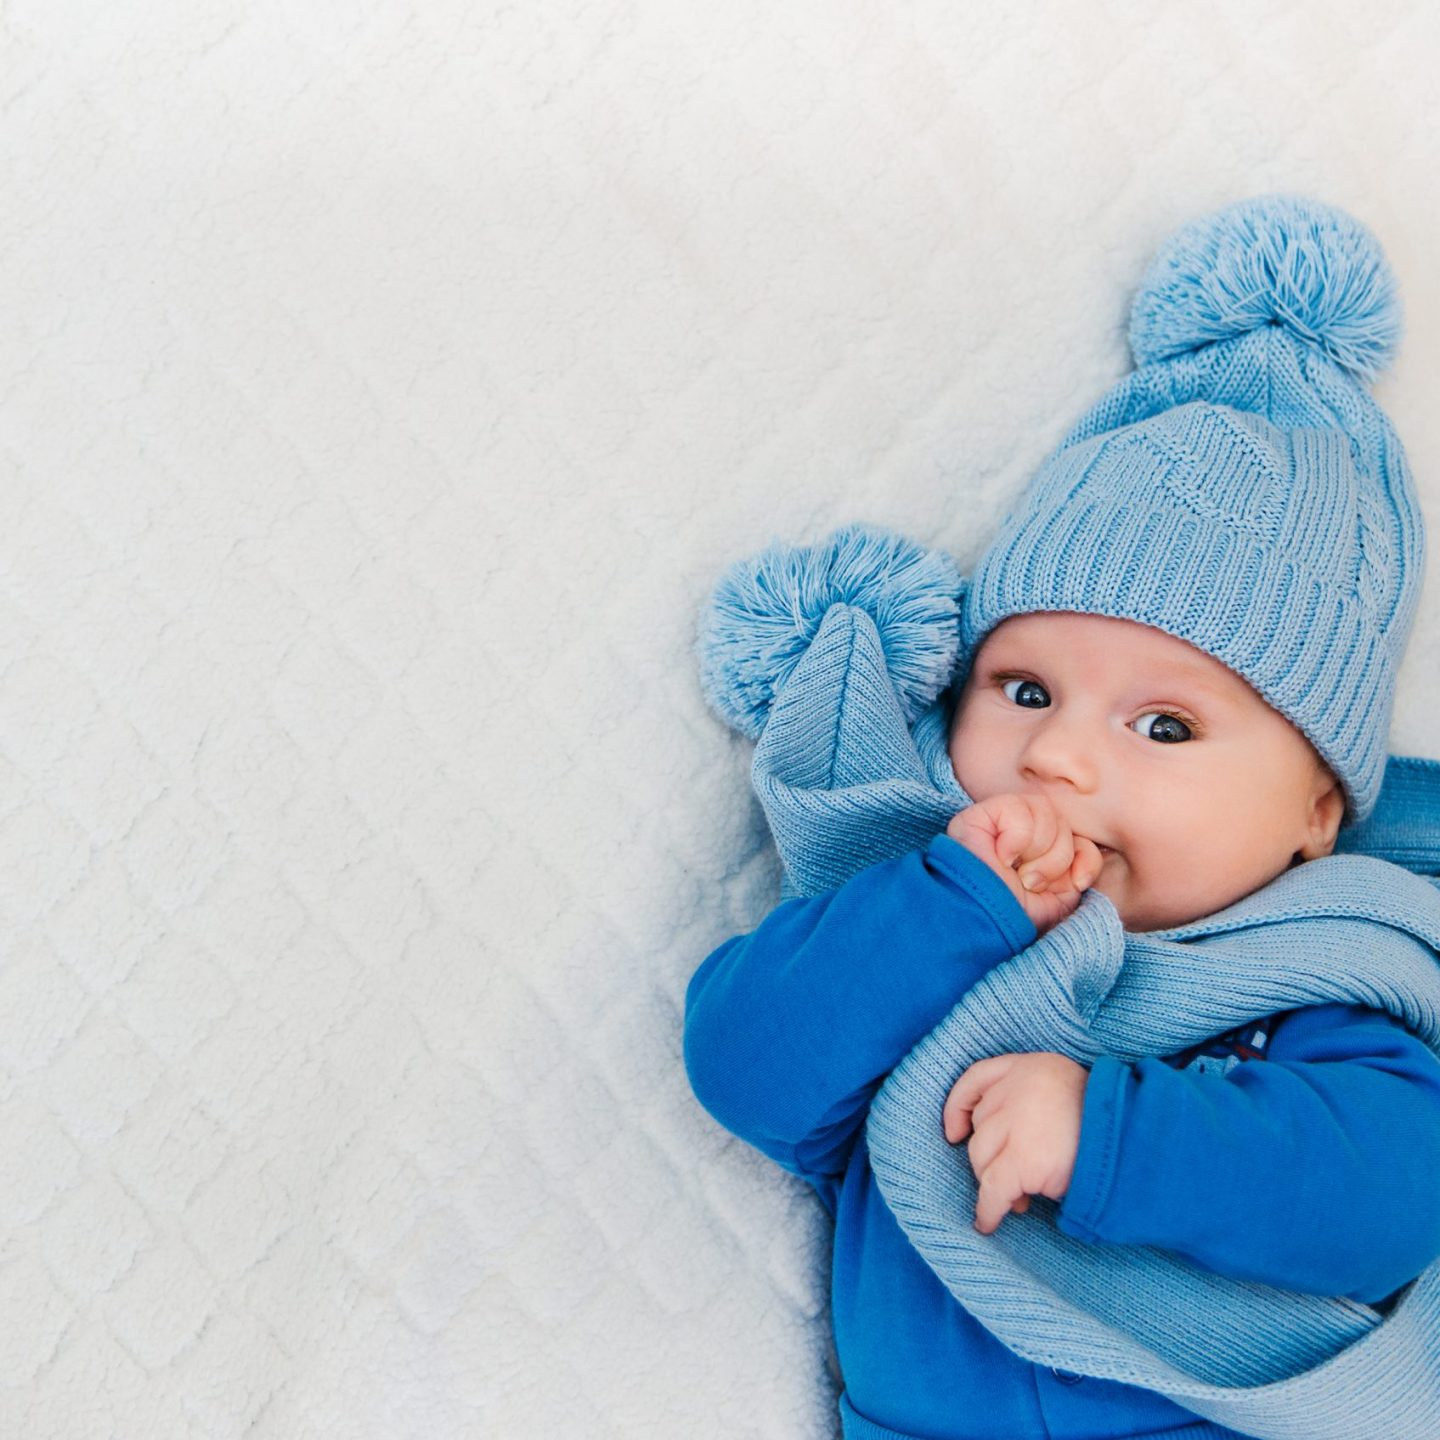 How To Protect Baby's Skin In The Winter?